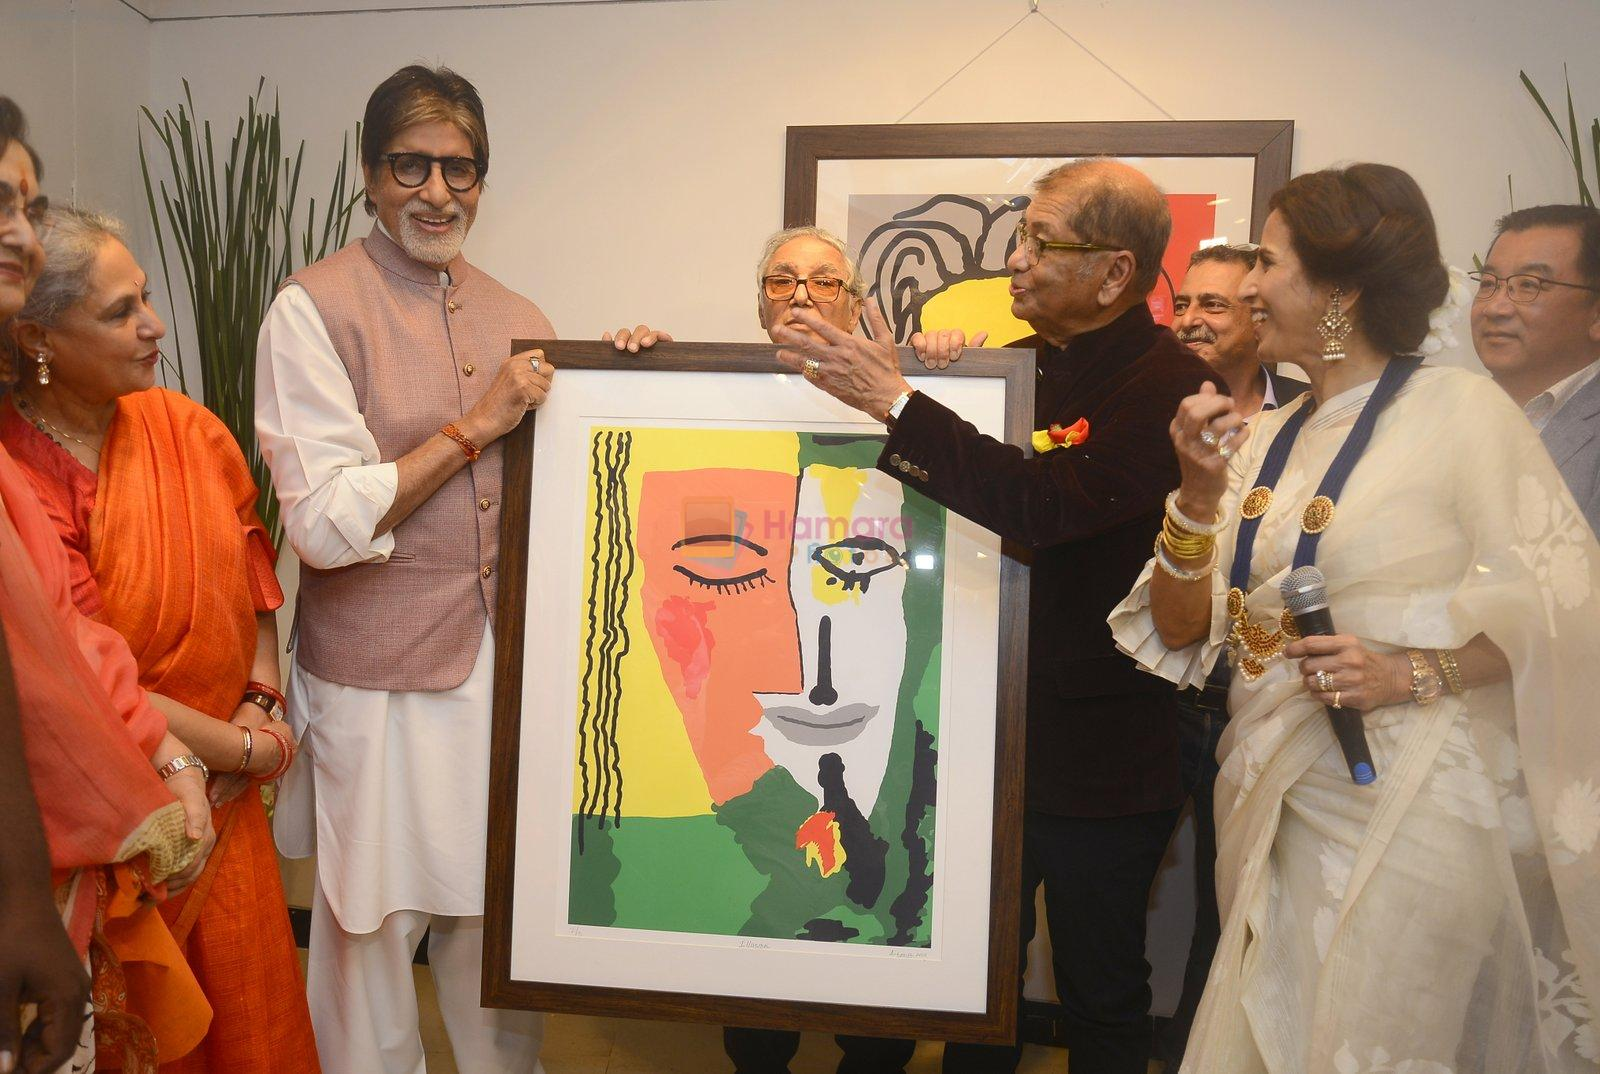 Art presented to big b by dilip de at Dilip De's art event on 16th Aug 2016